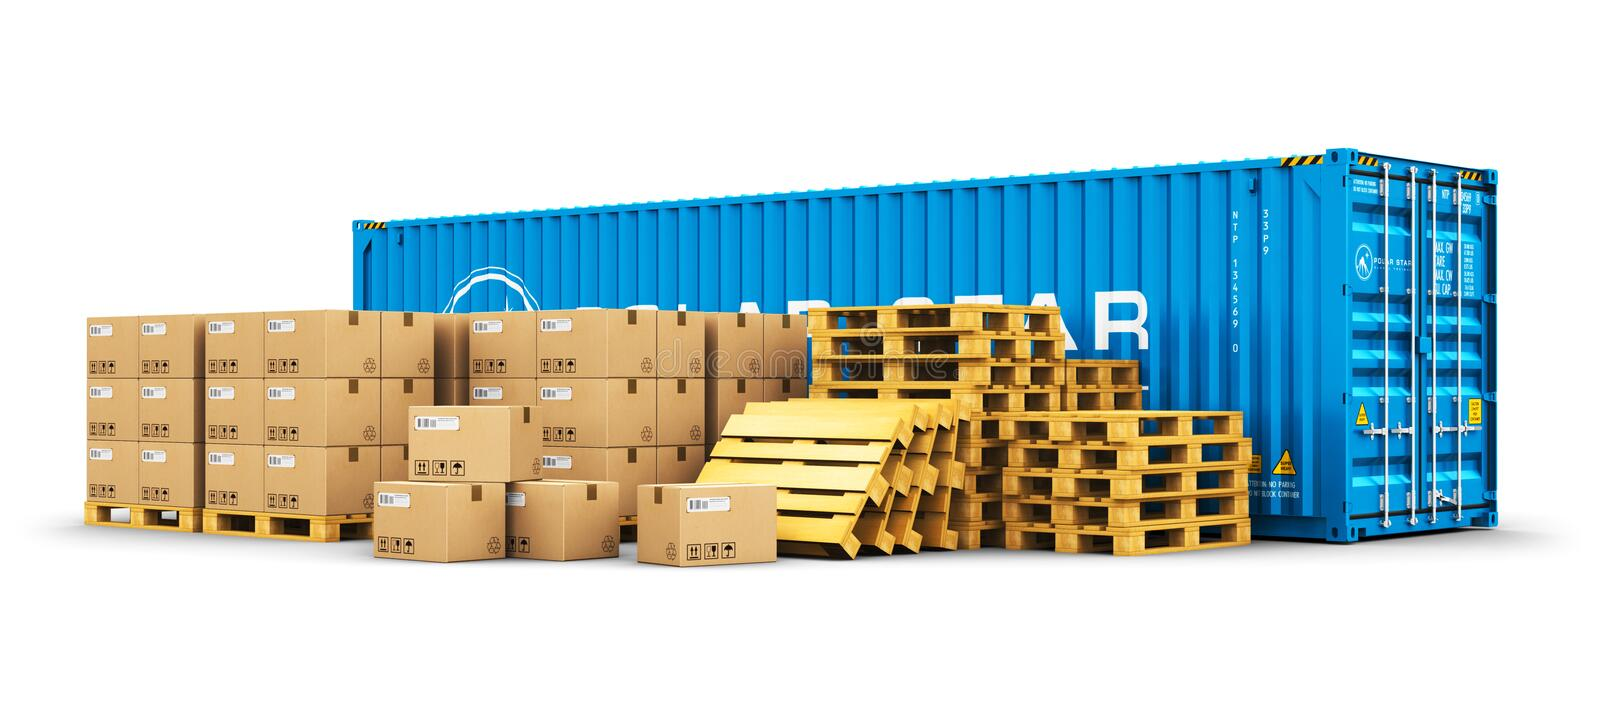 40 ft cargo container and shipping pallets with cardboard boxes. Creative abstract cargo freight transportation, shipping, logistics, delivery and distribution stock illustration